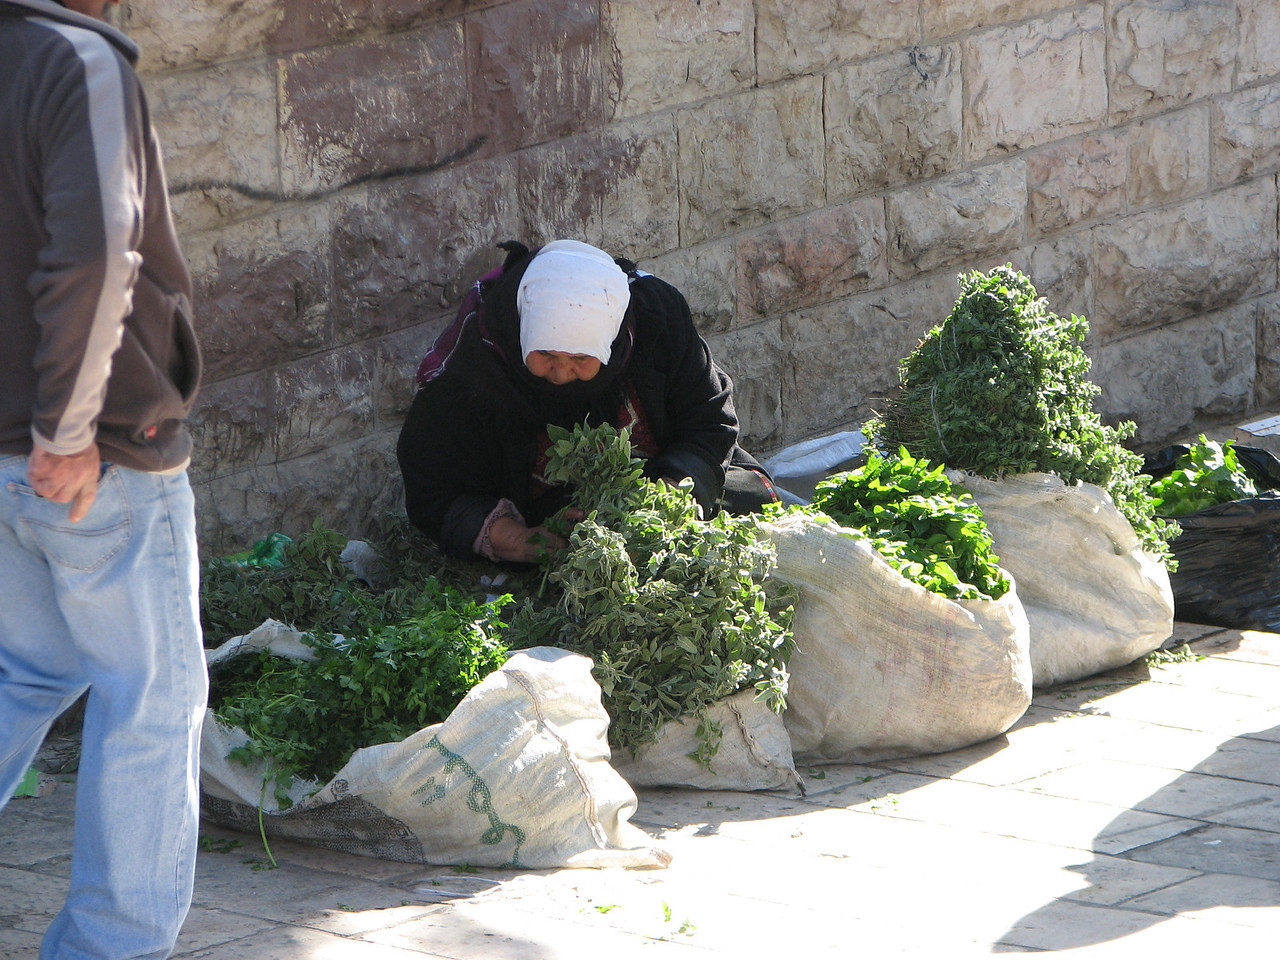 2007 12 29 Sat - Old City walk - Damascus Gate market woman 1 on North side of Old City